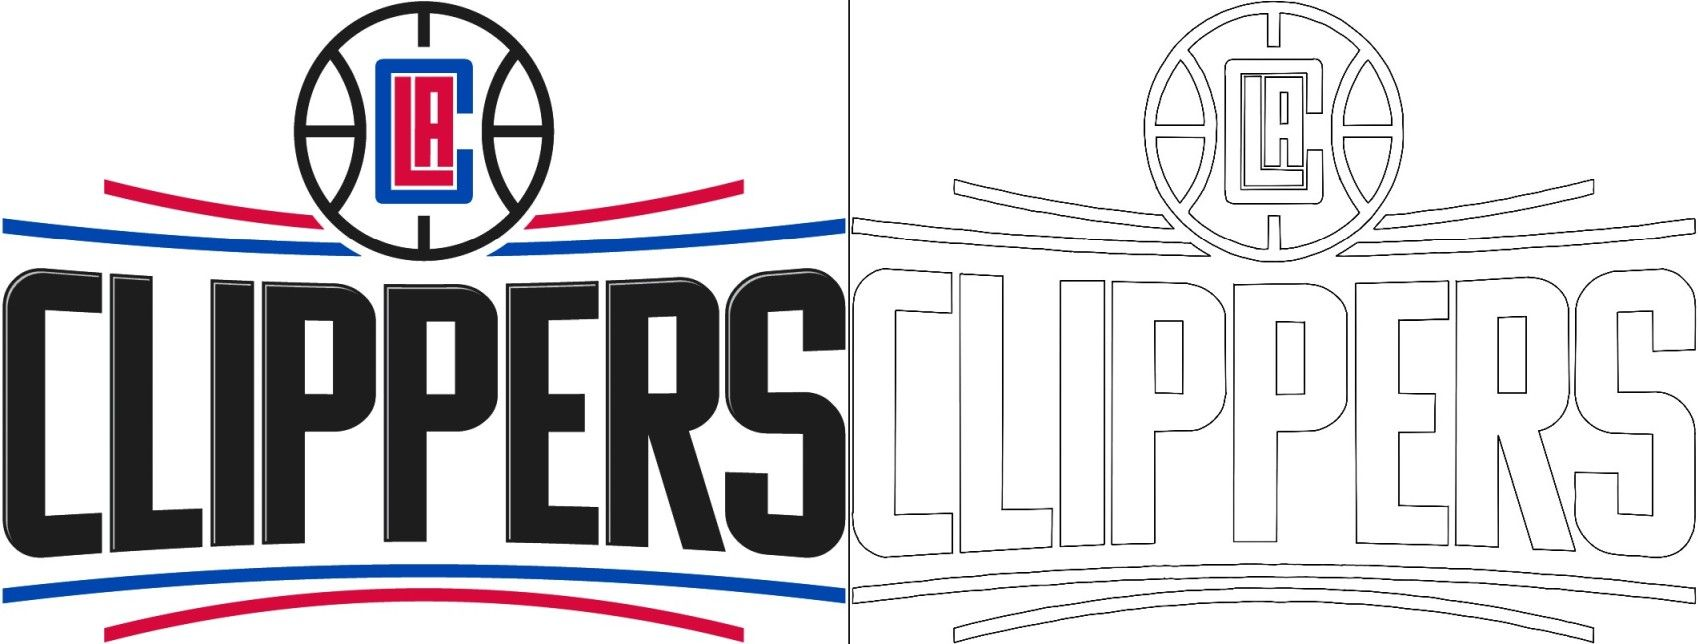 Clippers logo coloring page in 2020 Logos, Coloring